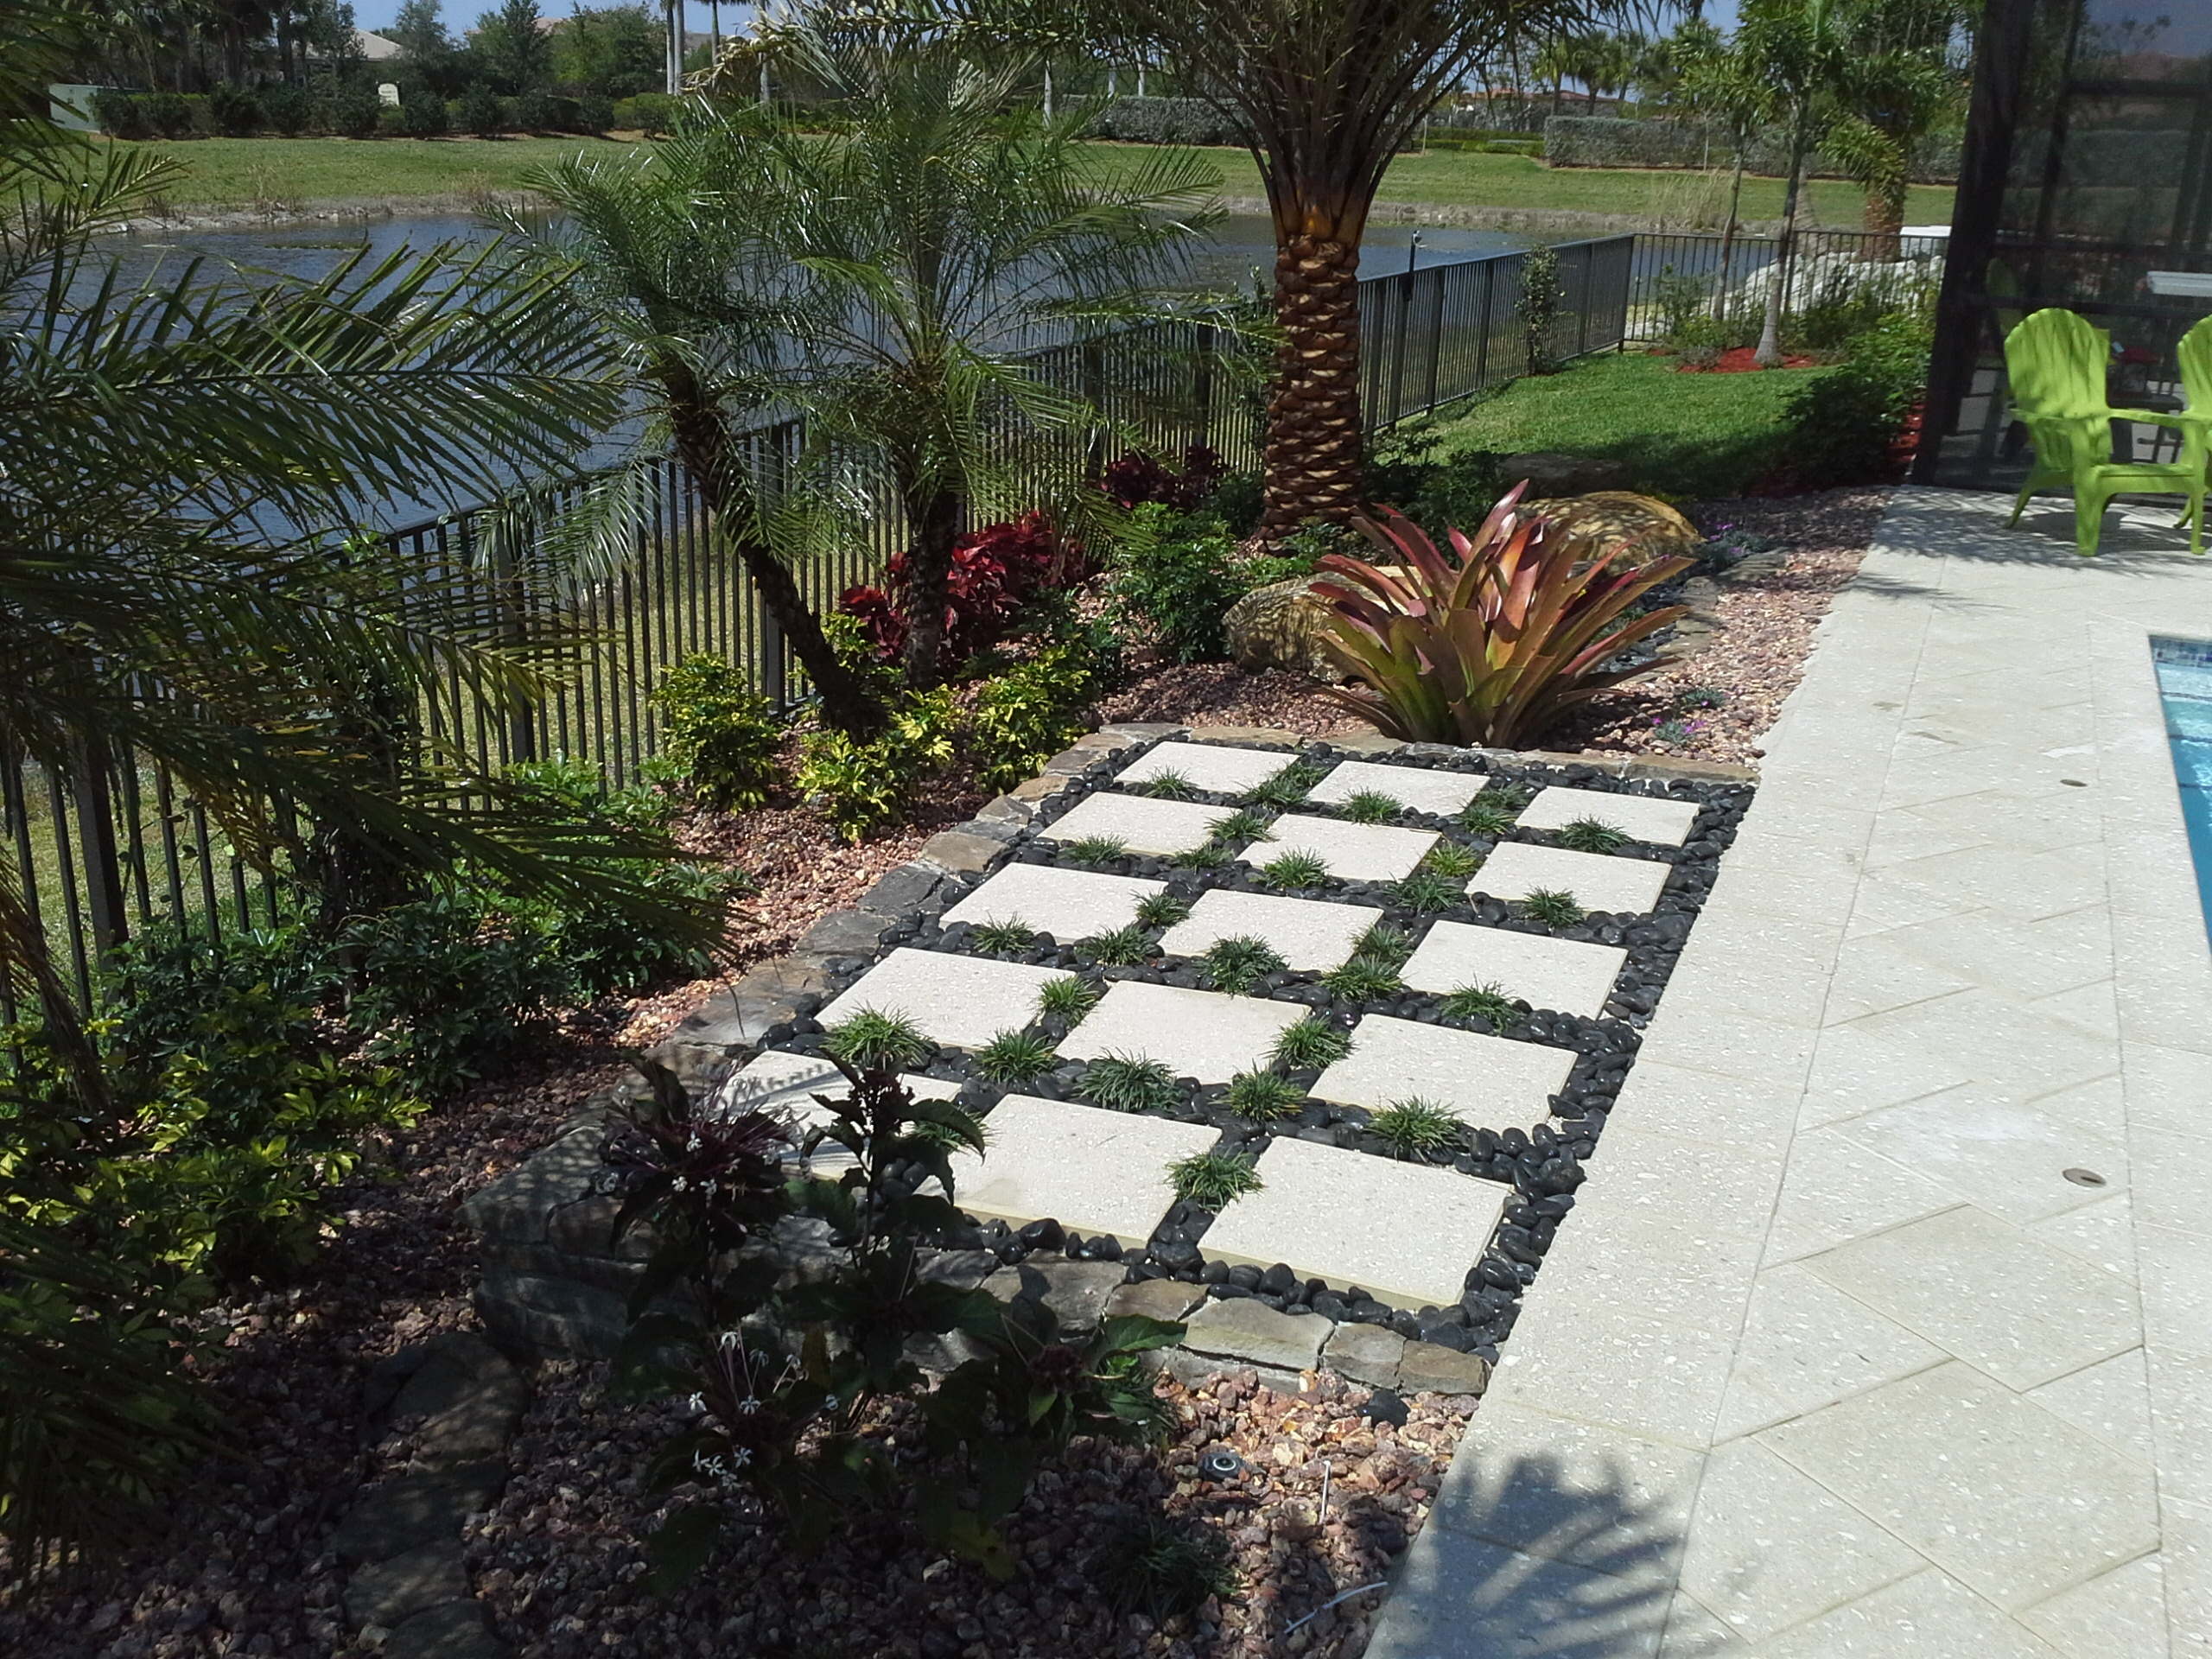 Landscape Design Broward,Outdoor Living Spaces Broward,Outdoor Kitchen Broward,Outdoor Living Areas Broward,Parkland Landcapers,Broward Landscape